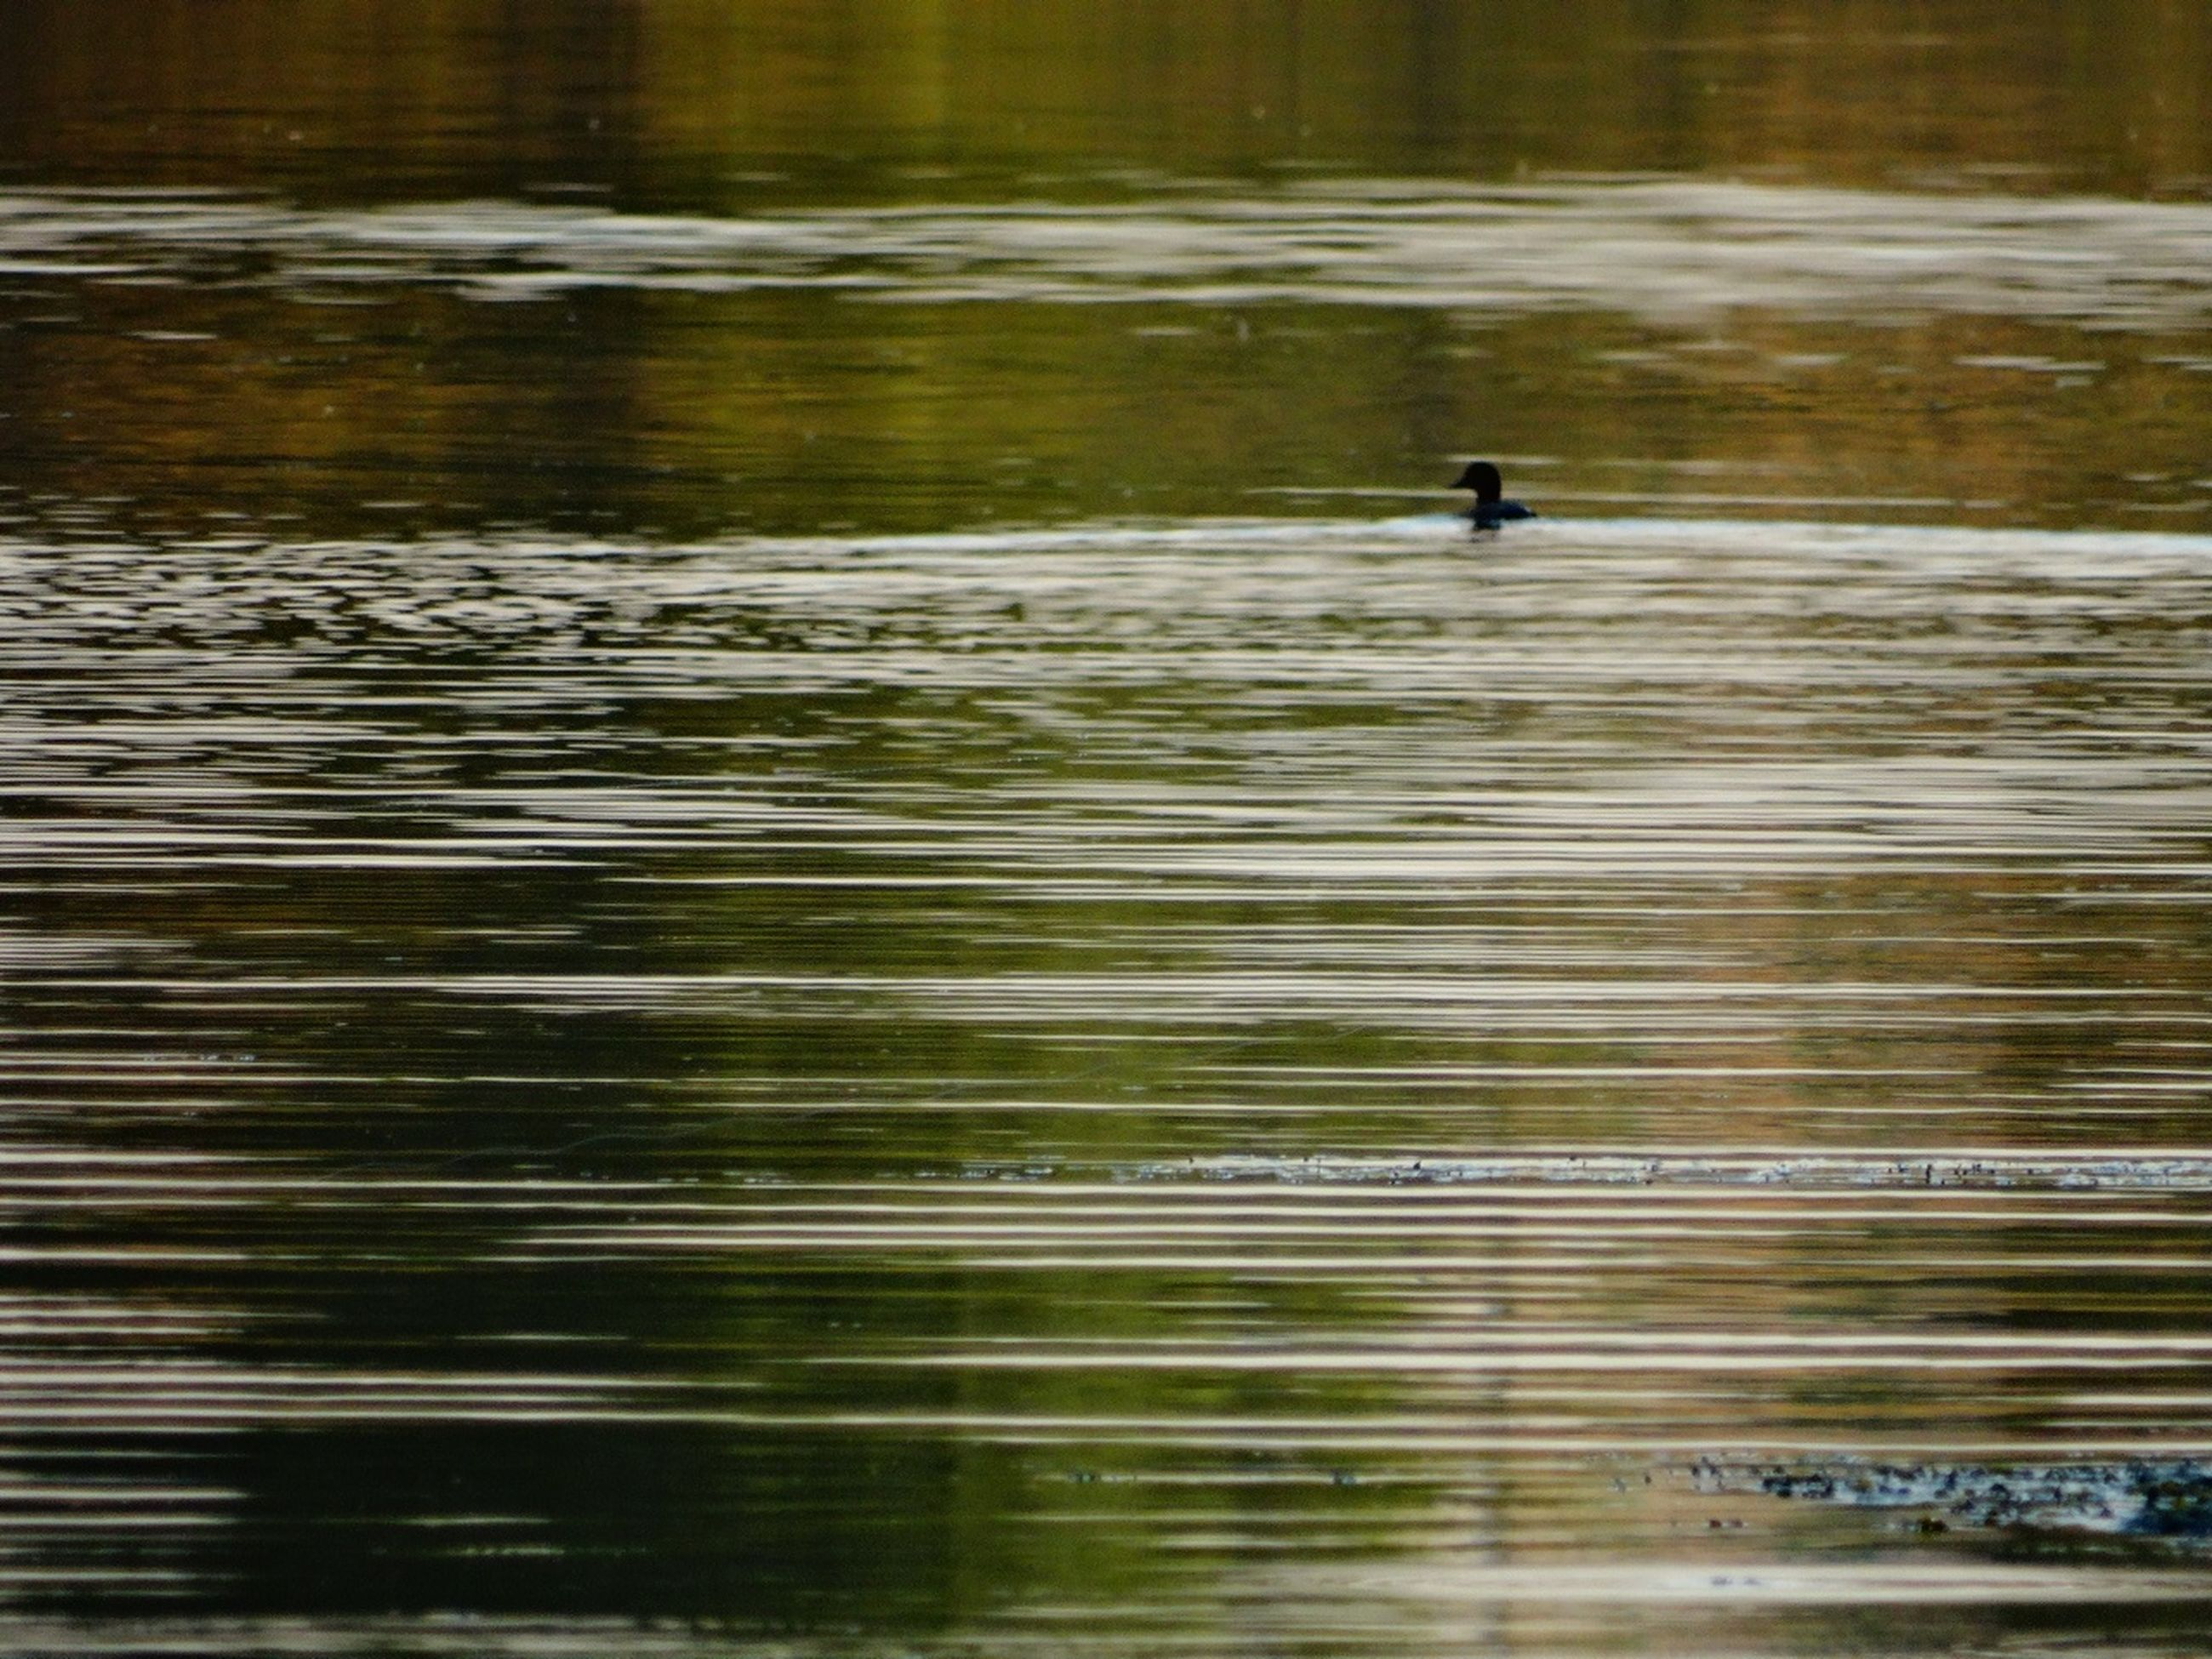 water, lake, reflection, waterfront, rippled, nature, bird, one animal, motion, tranquility, outdoors, river, beauty in nature, silhouette, blurred motion, tranquil scene, animal themes, no people, animals in the wild, day